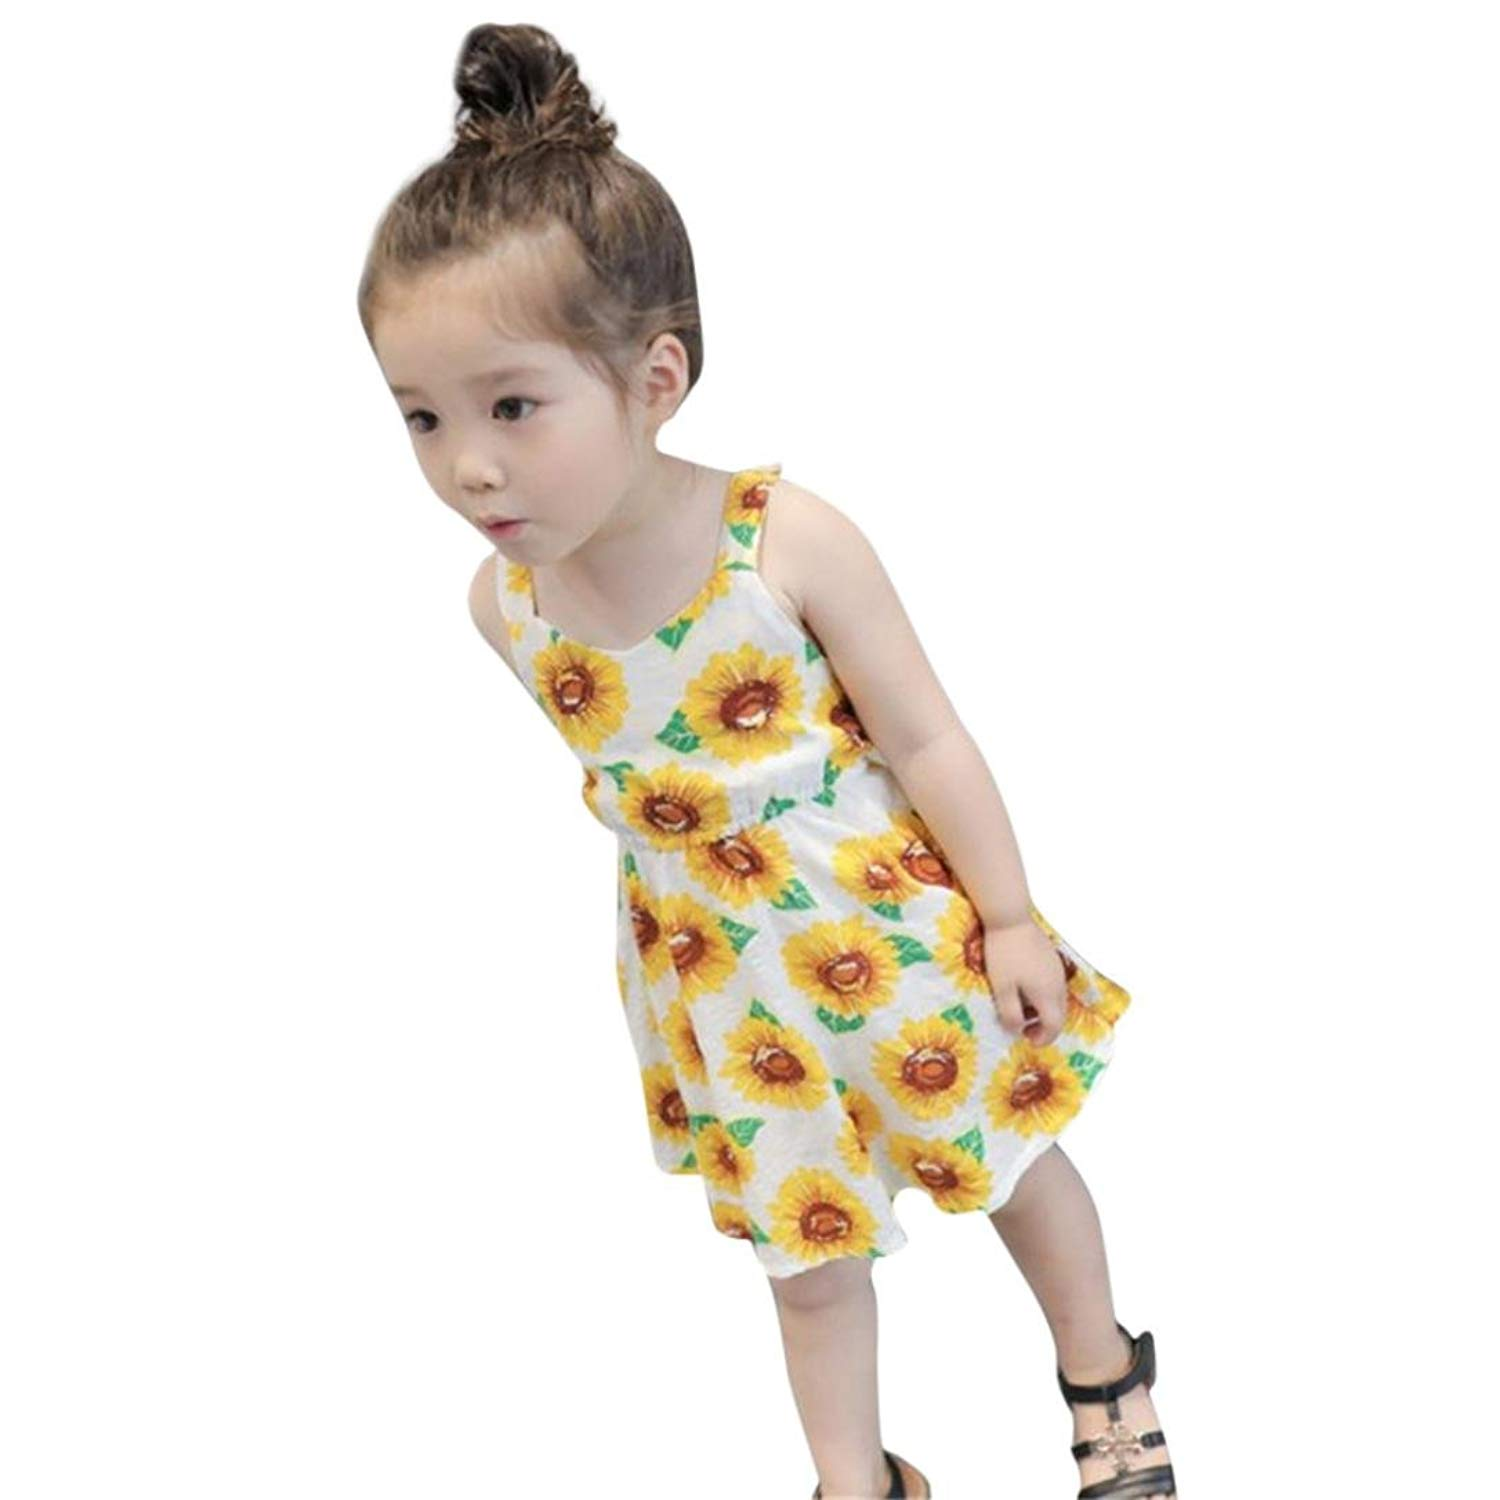 282921190b81f Get Quotations · Ourhomer Baby Girls Dresses Toddler Summer Sunflower Print  Sleeveless Backless Floral Dress Casual Beach Outfits Clothes